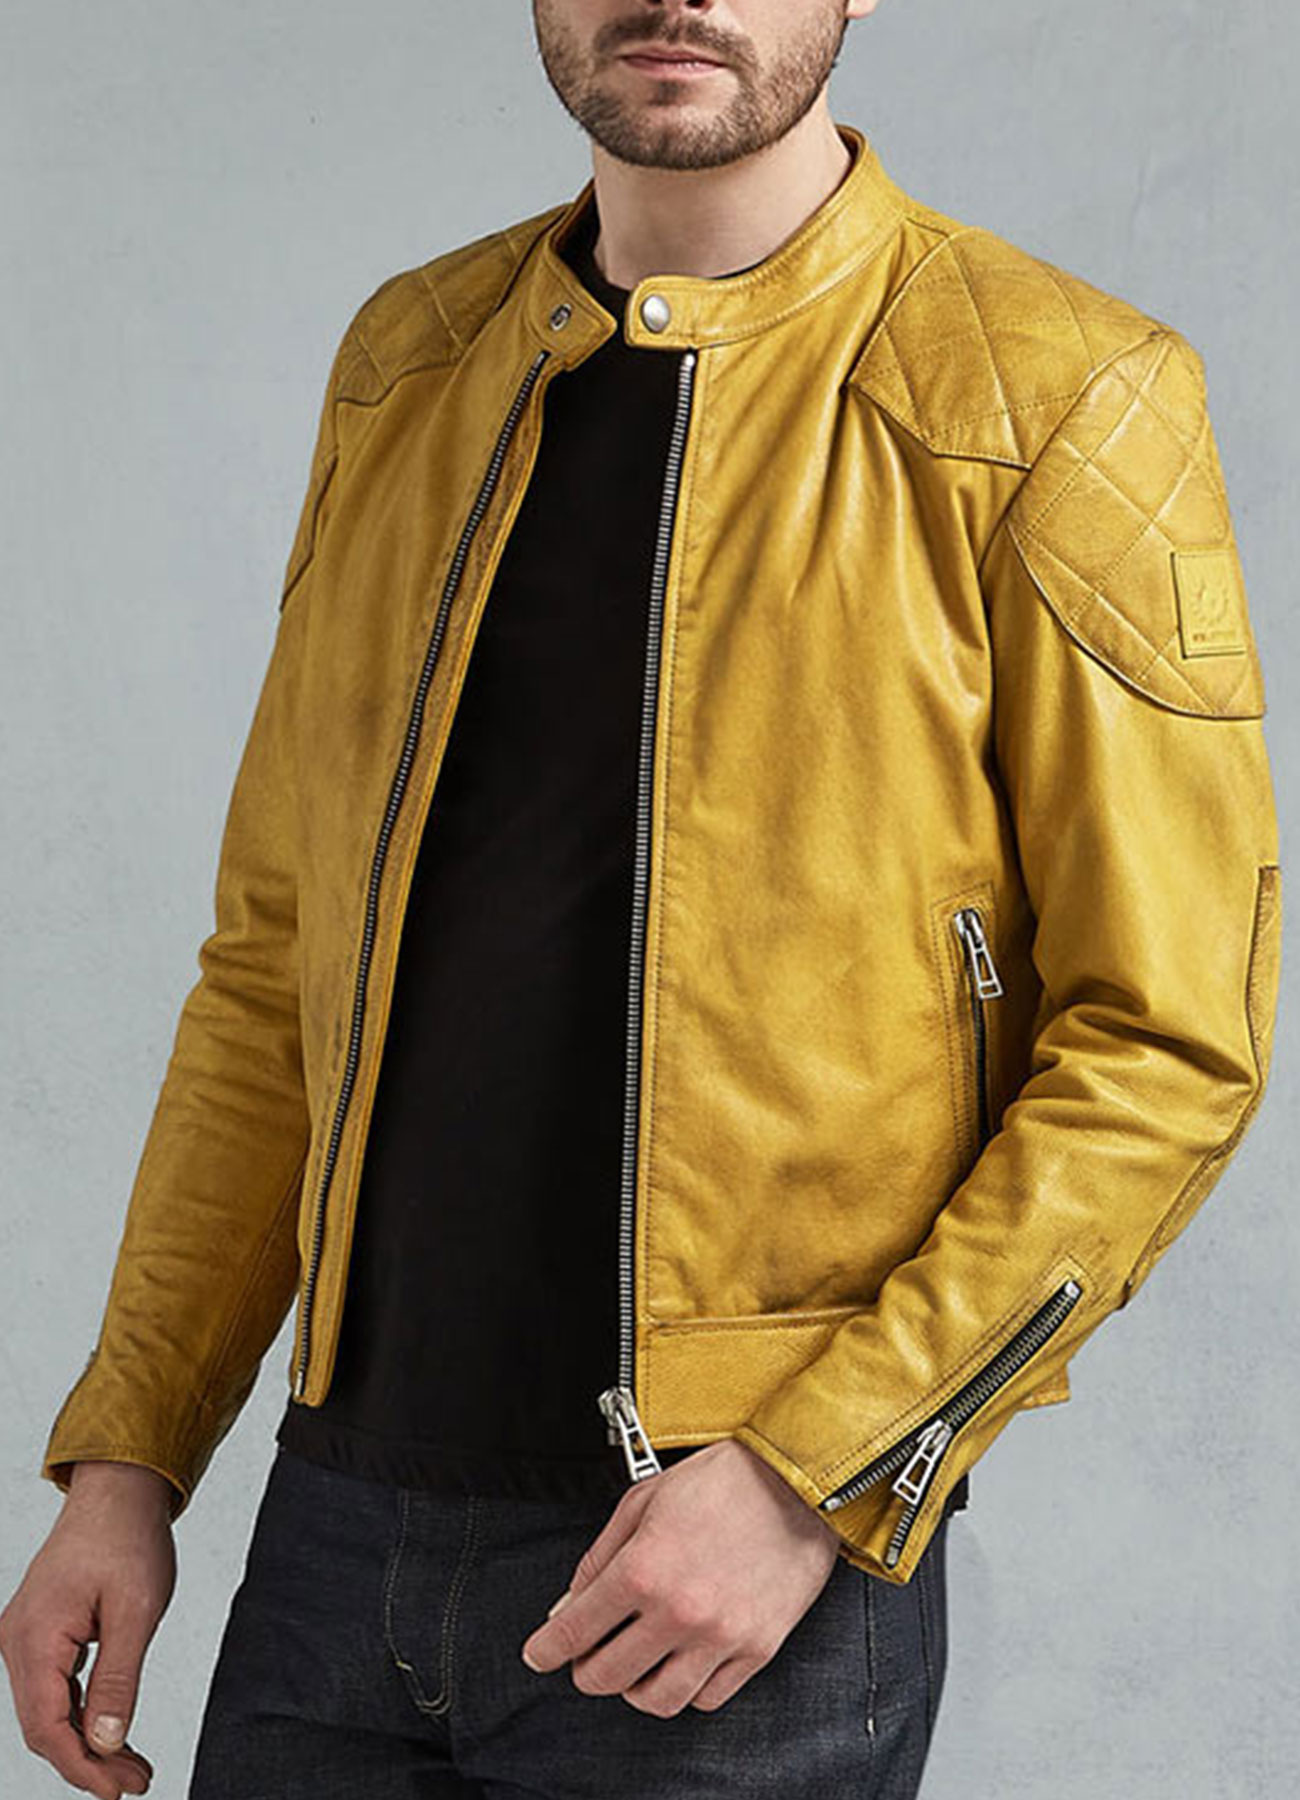 Men's Cafe Racer Yellow Leather Jacket